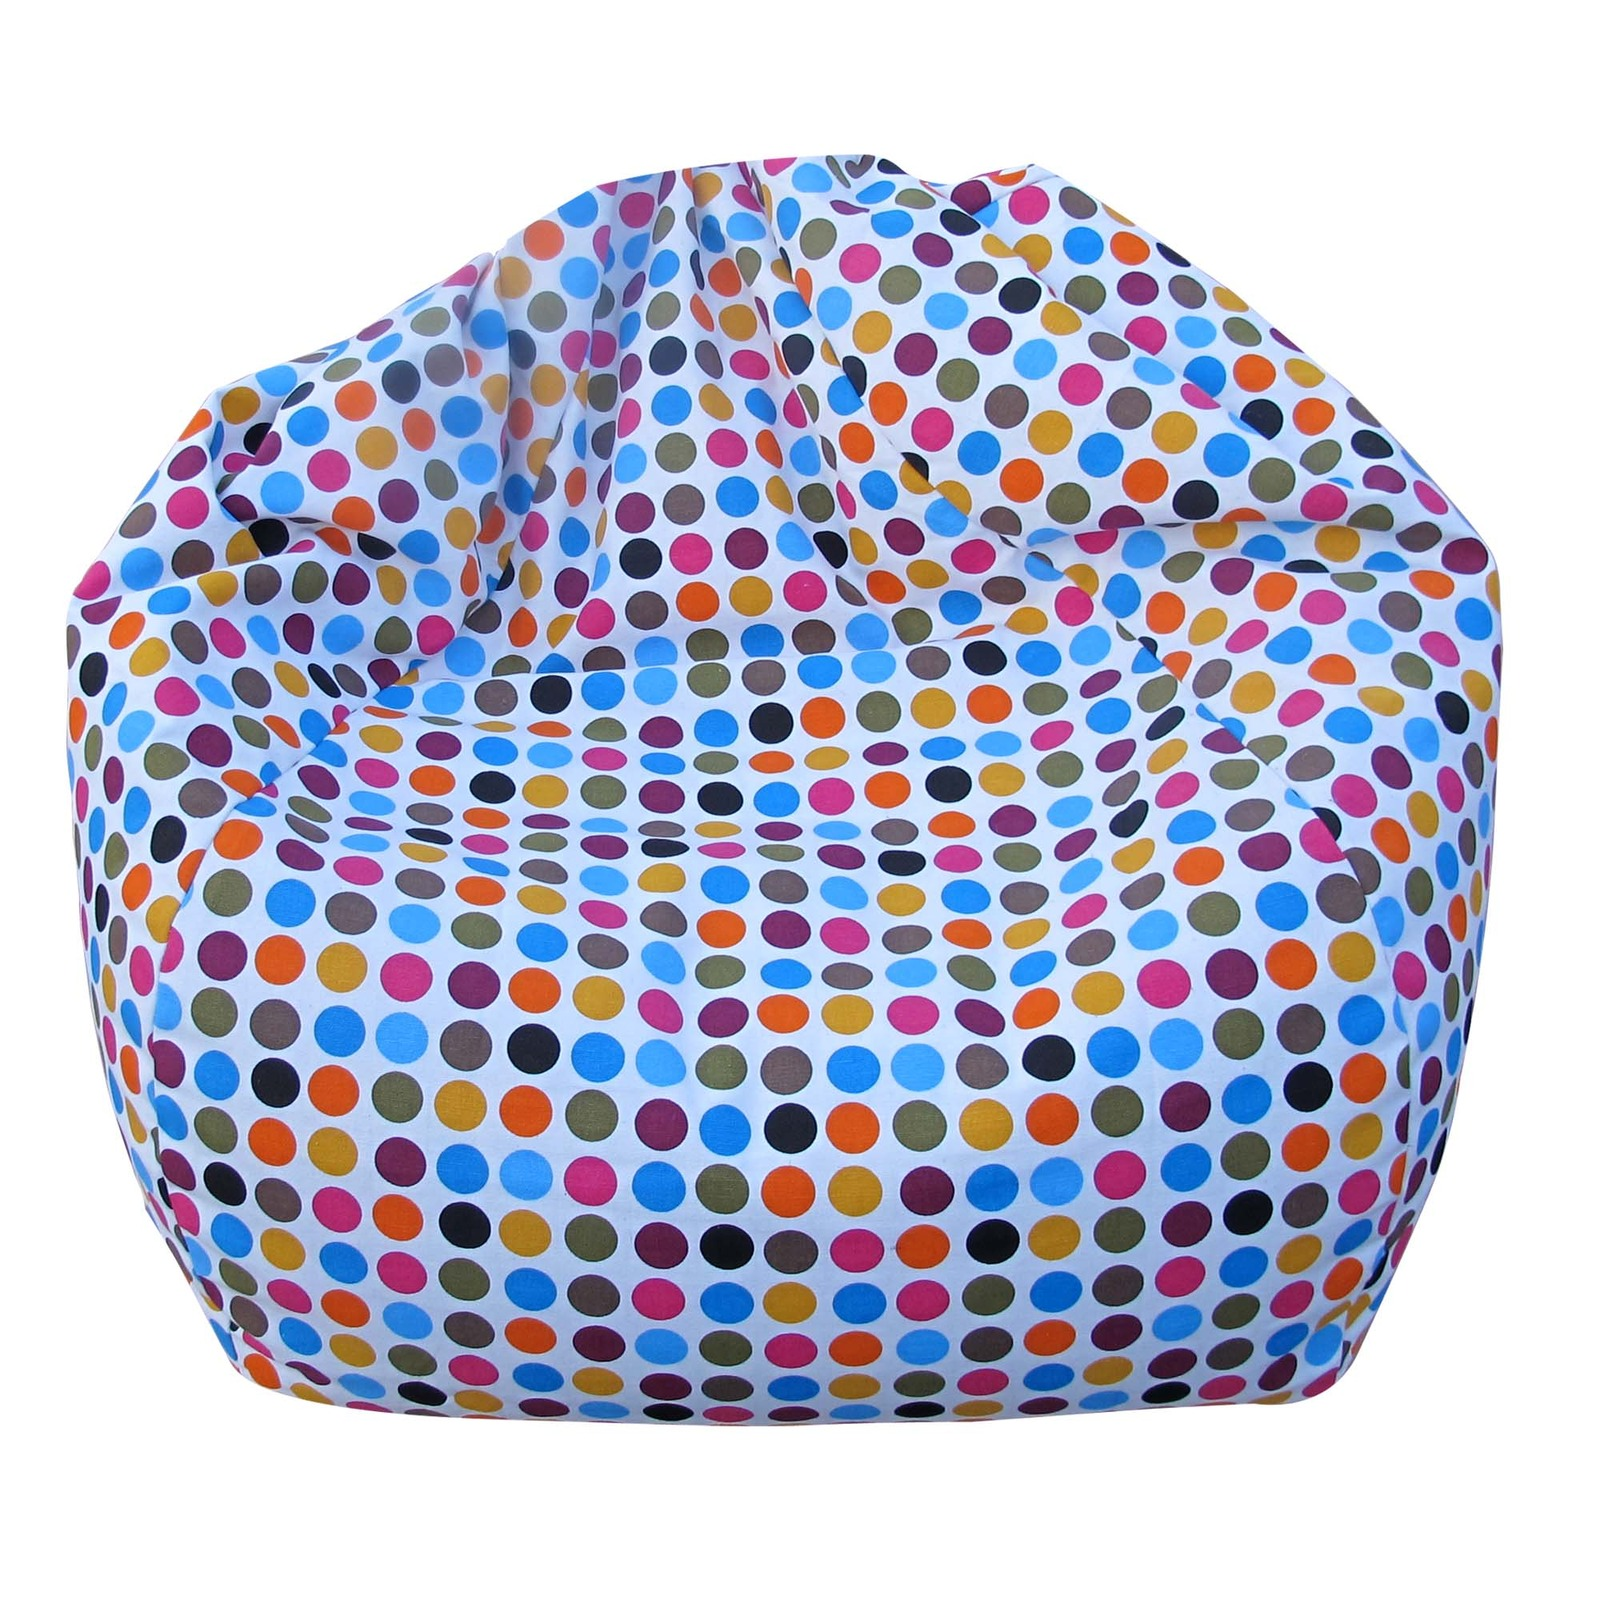 Filled bean bags | Buy bean bag online in India at low price